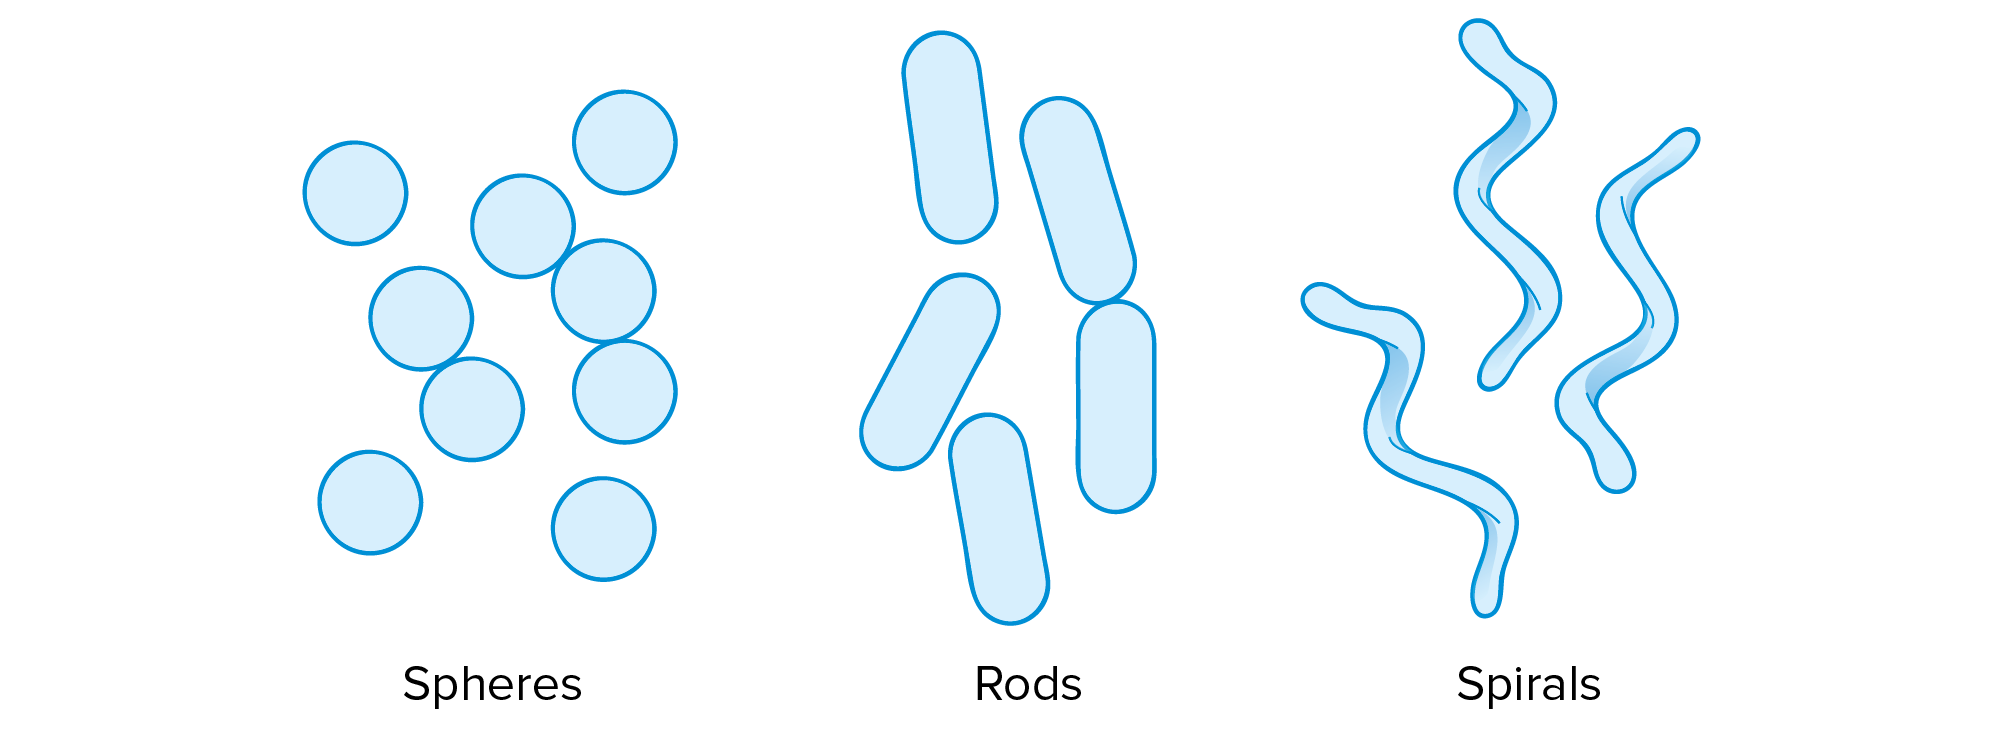 Prokaryote Structure Article Khan Academy Cell This Diagram Shows The Of A Typical Prokaryotic Cells Are Typically Shaped As Either Spheres Called Cocci Rods